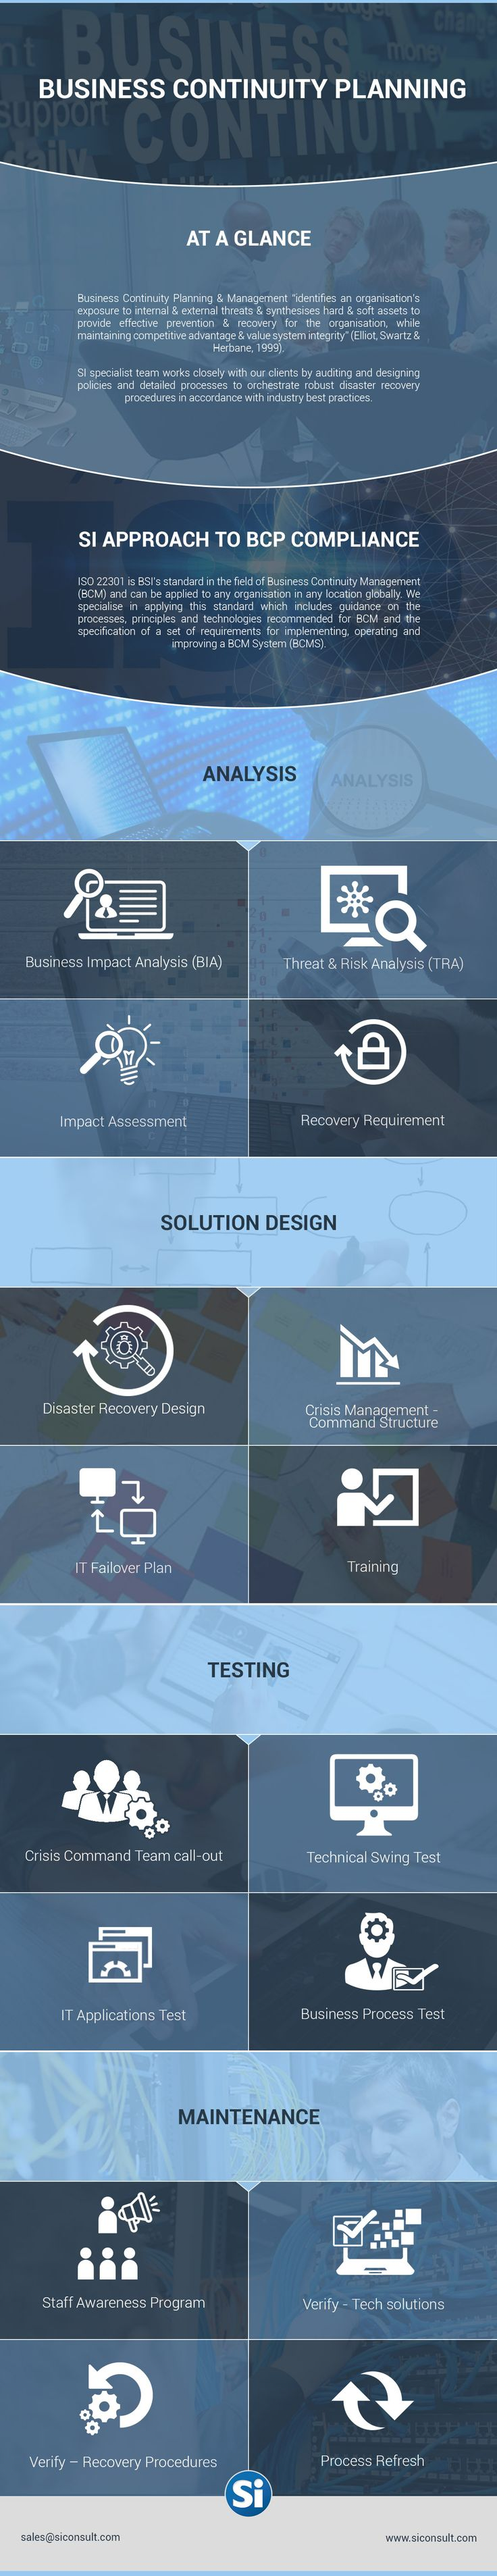 Business Continuity Planning  Business Continuity Planning And